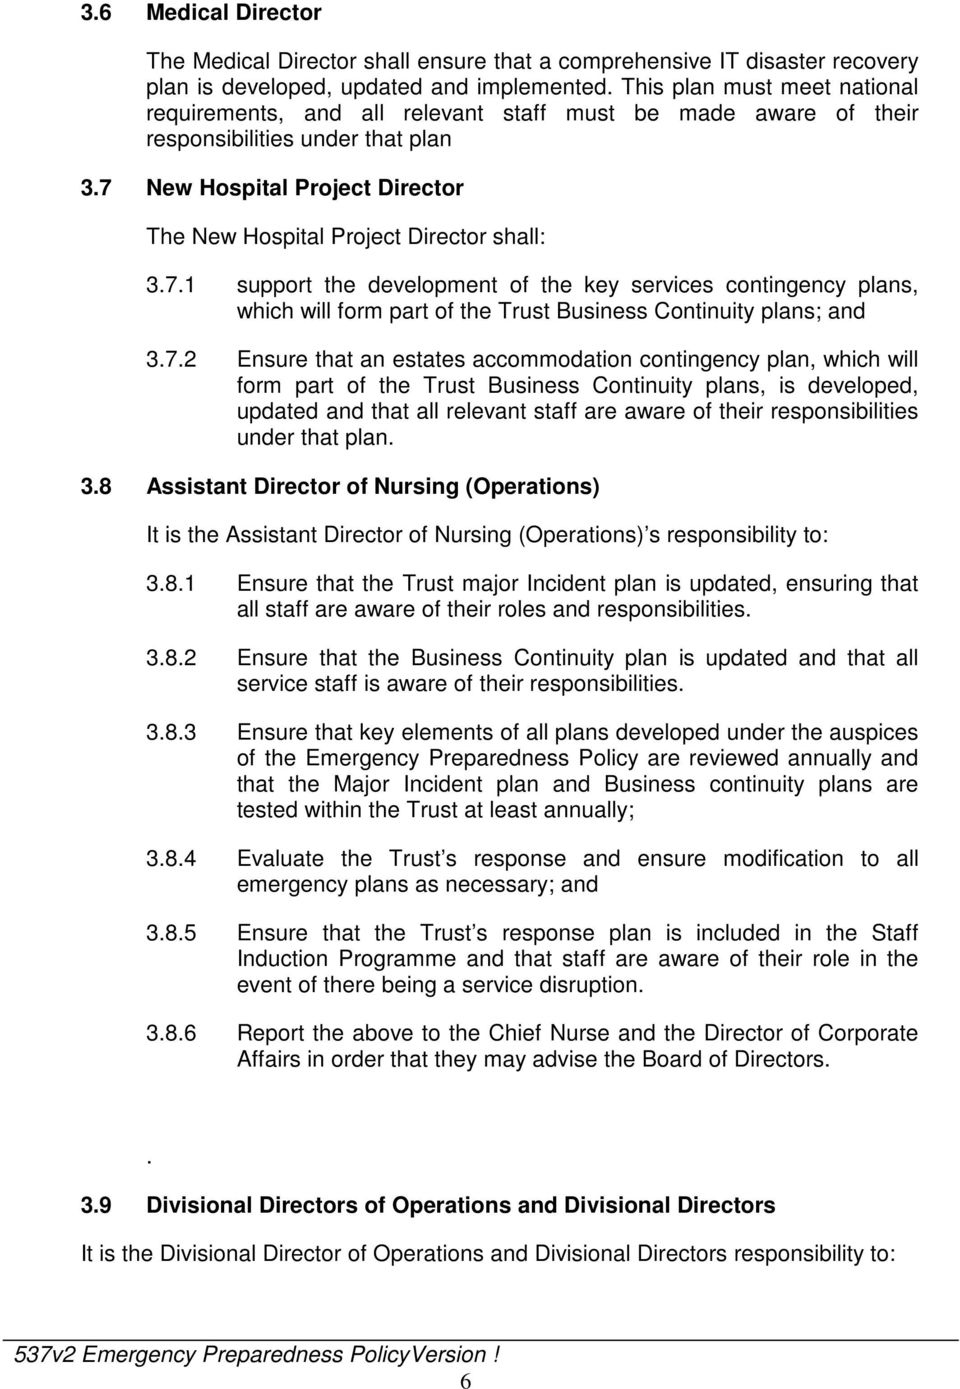 7 New Hospital Project Director The New Hospital Project Director shall: 3.7.1 support the development of the key services contingency plans, which will form part of the Trust Business Continuity plans; and 3.